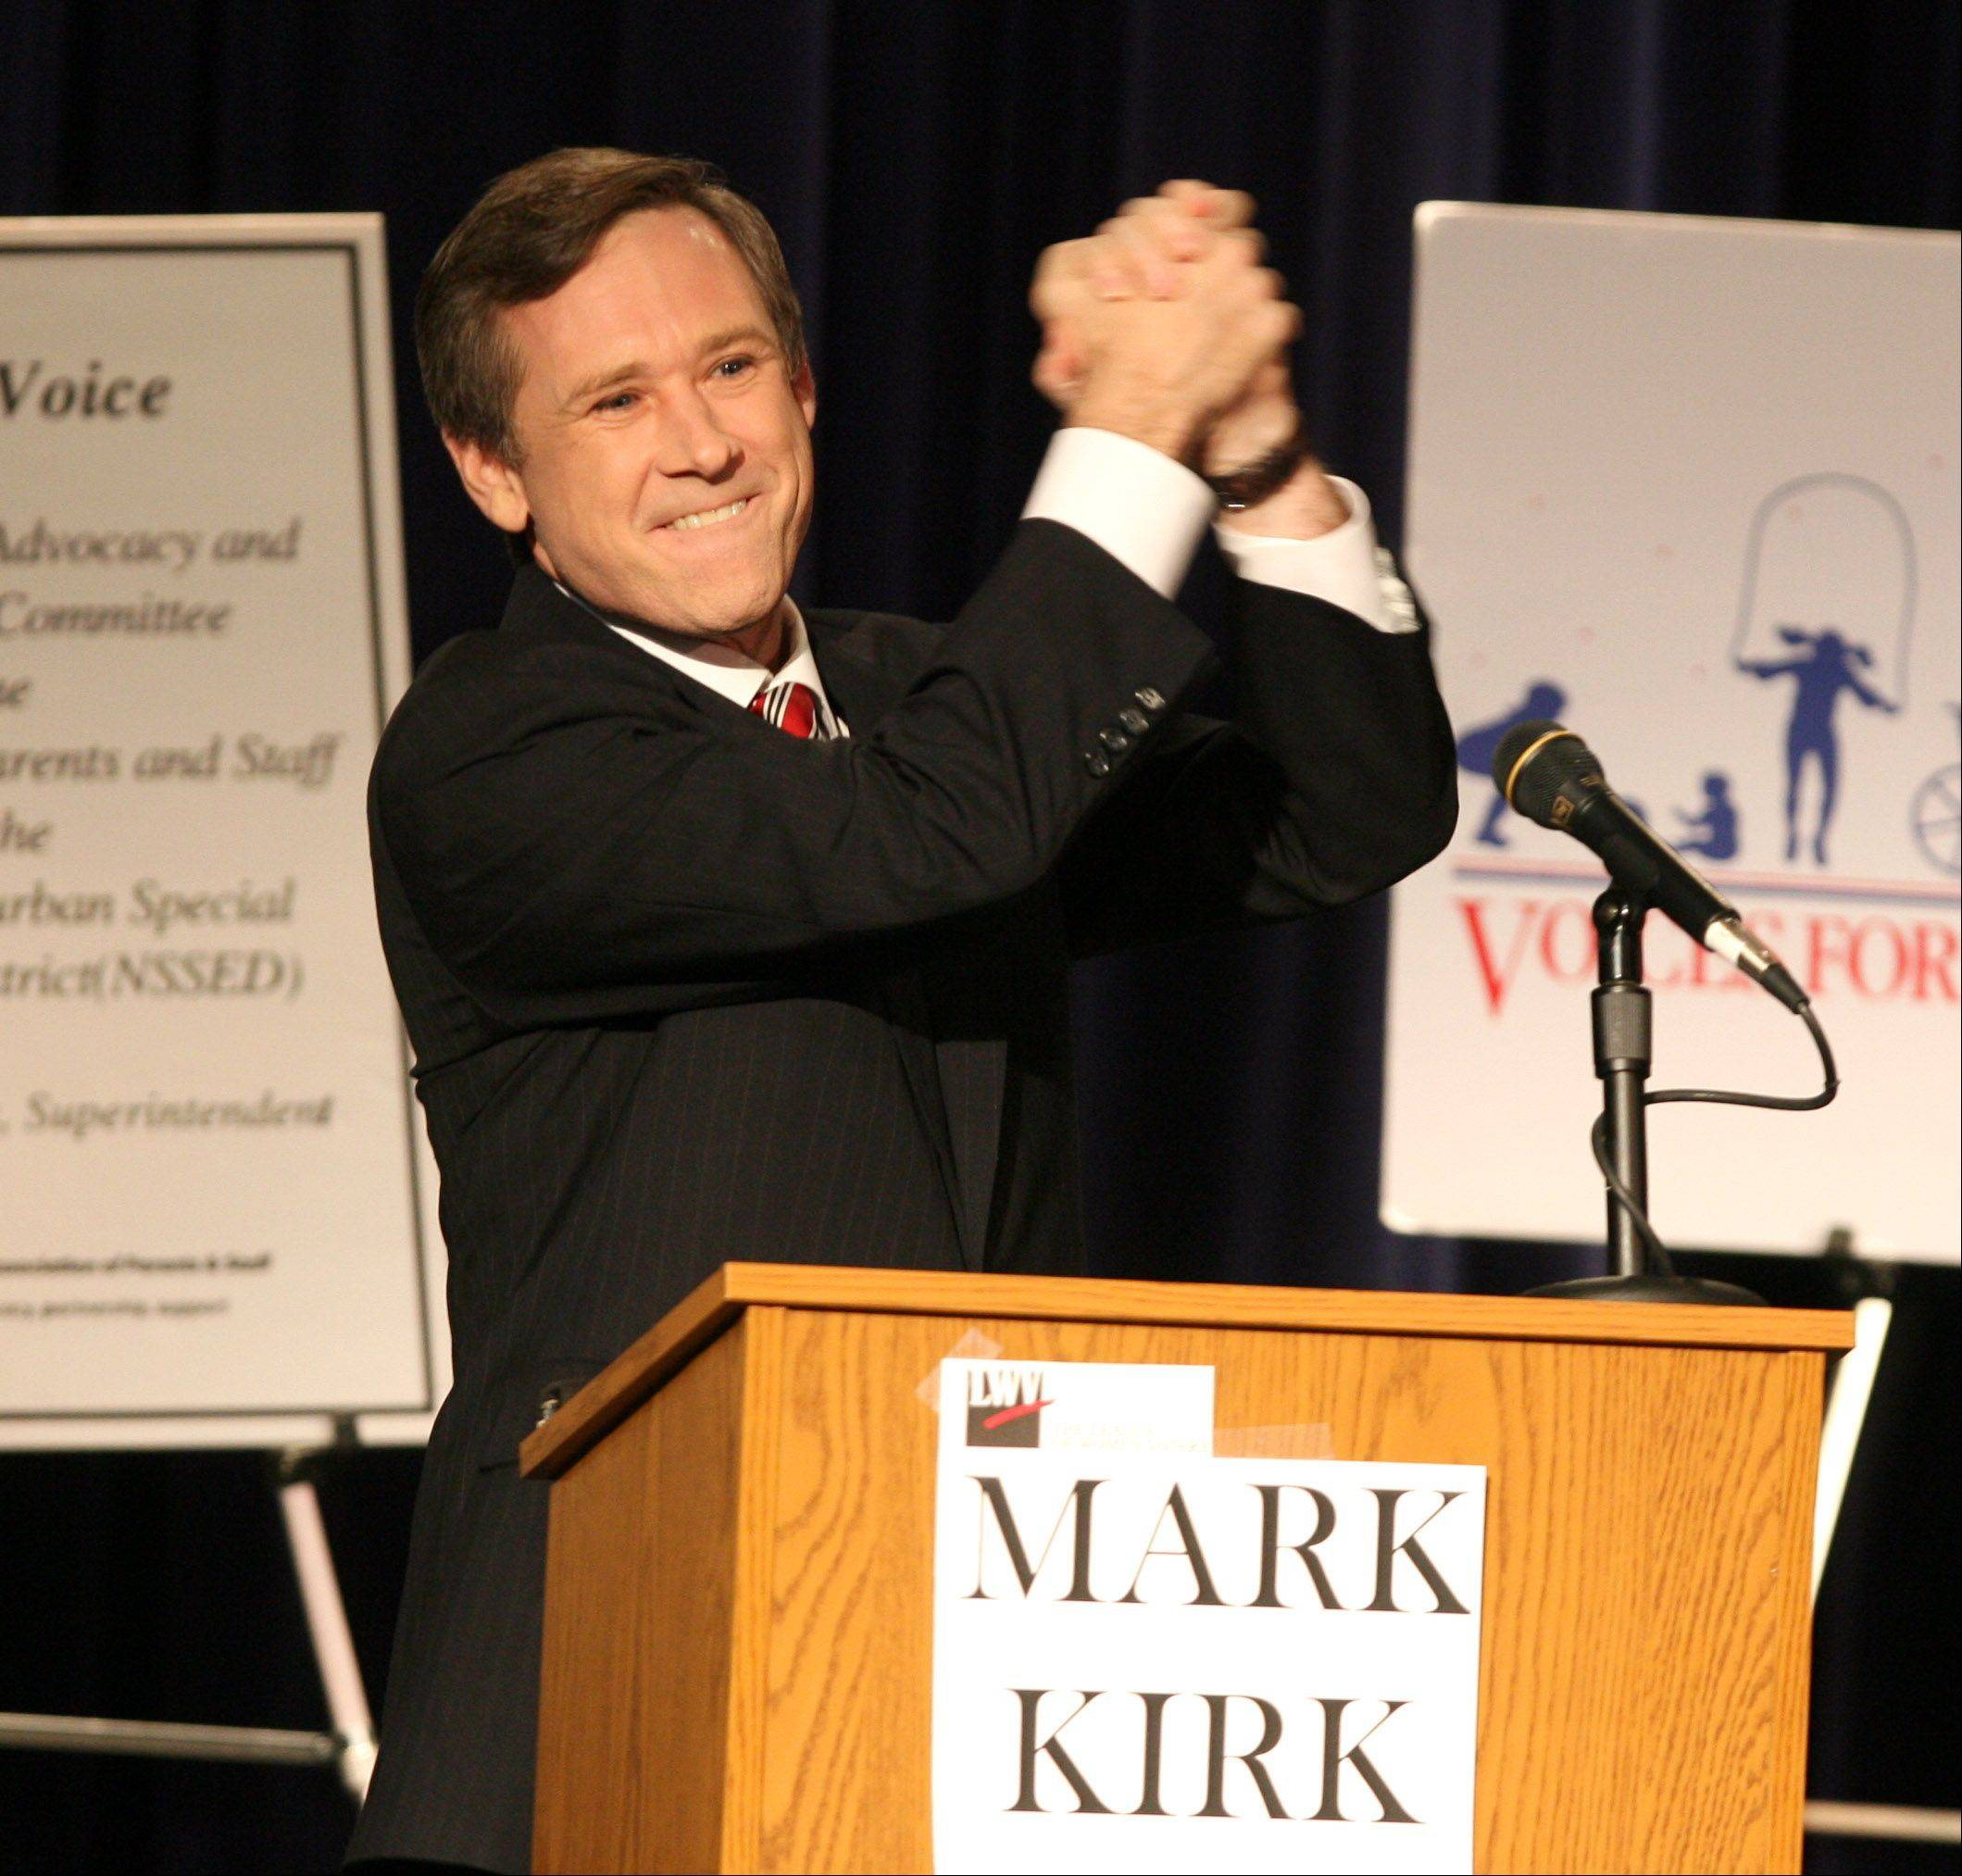 As Kirk recovers, Illinois GOP launches plan he helped fine-tune